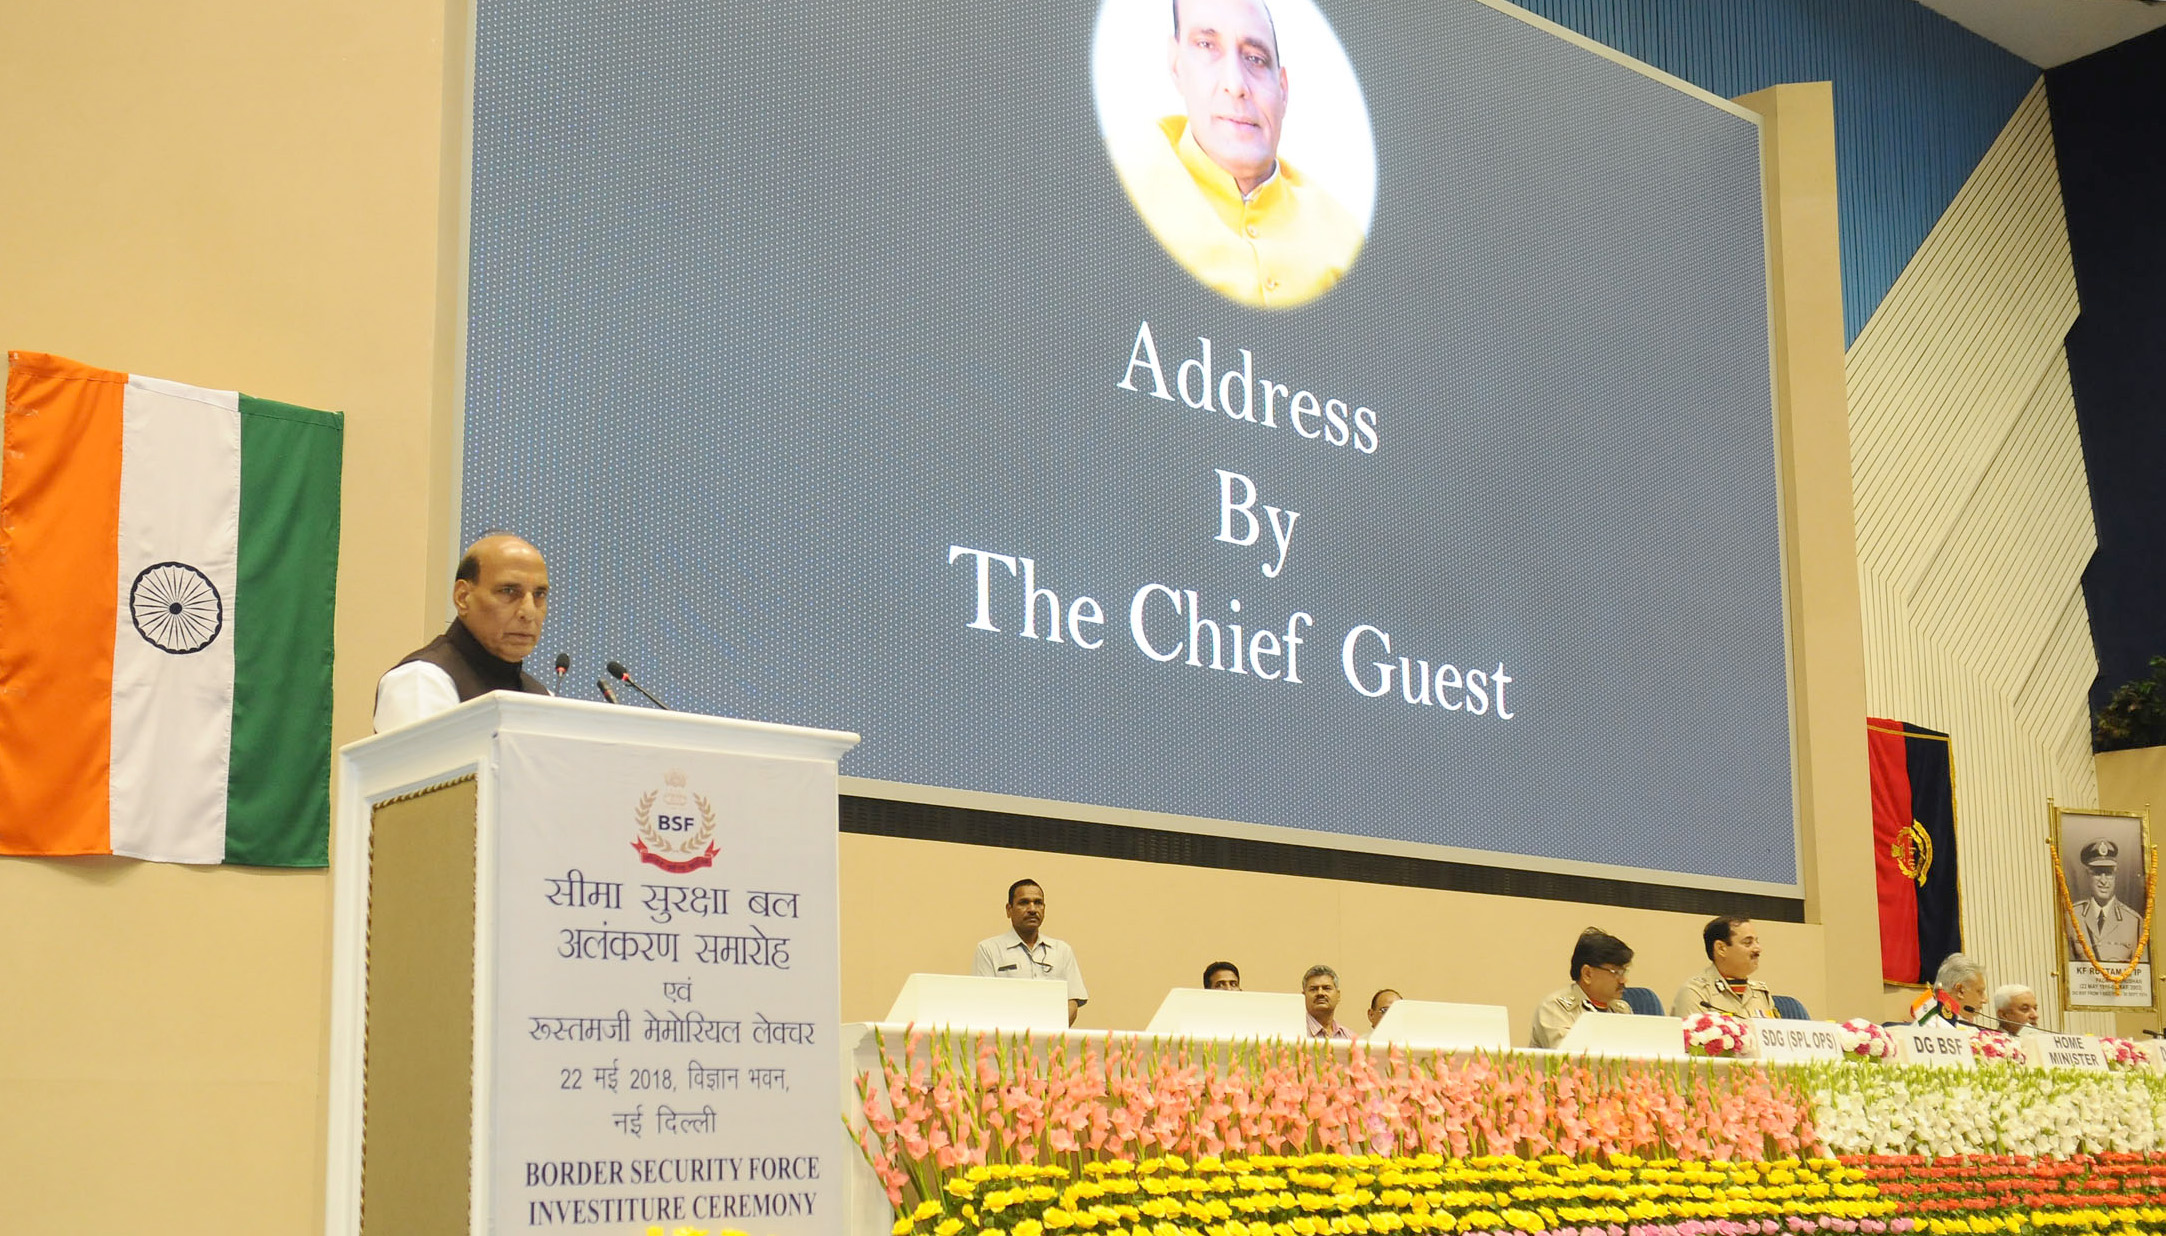 The Union Home Minister, Shri Rajnath Singh addressing at the Investiture Ceremony of Border Security Force (BSF), in New Delhi on May 22, 2018.